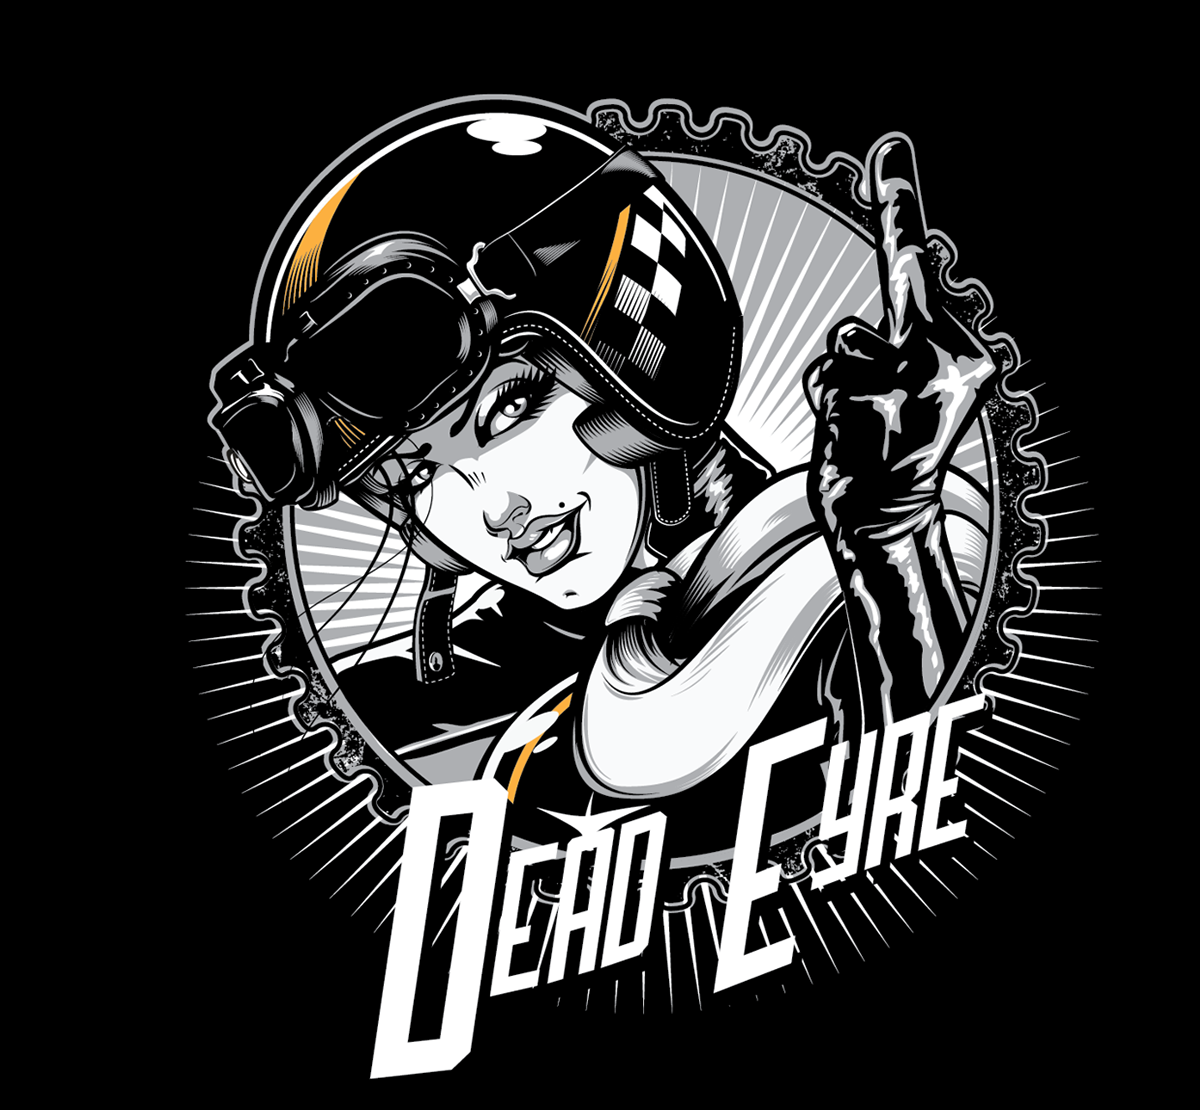 Dead Eyre Clothing T-Shirt Design Cafe Chick